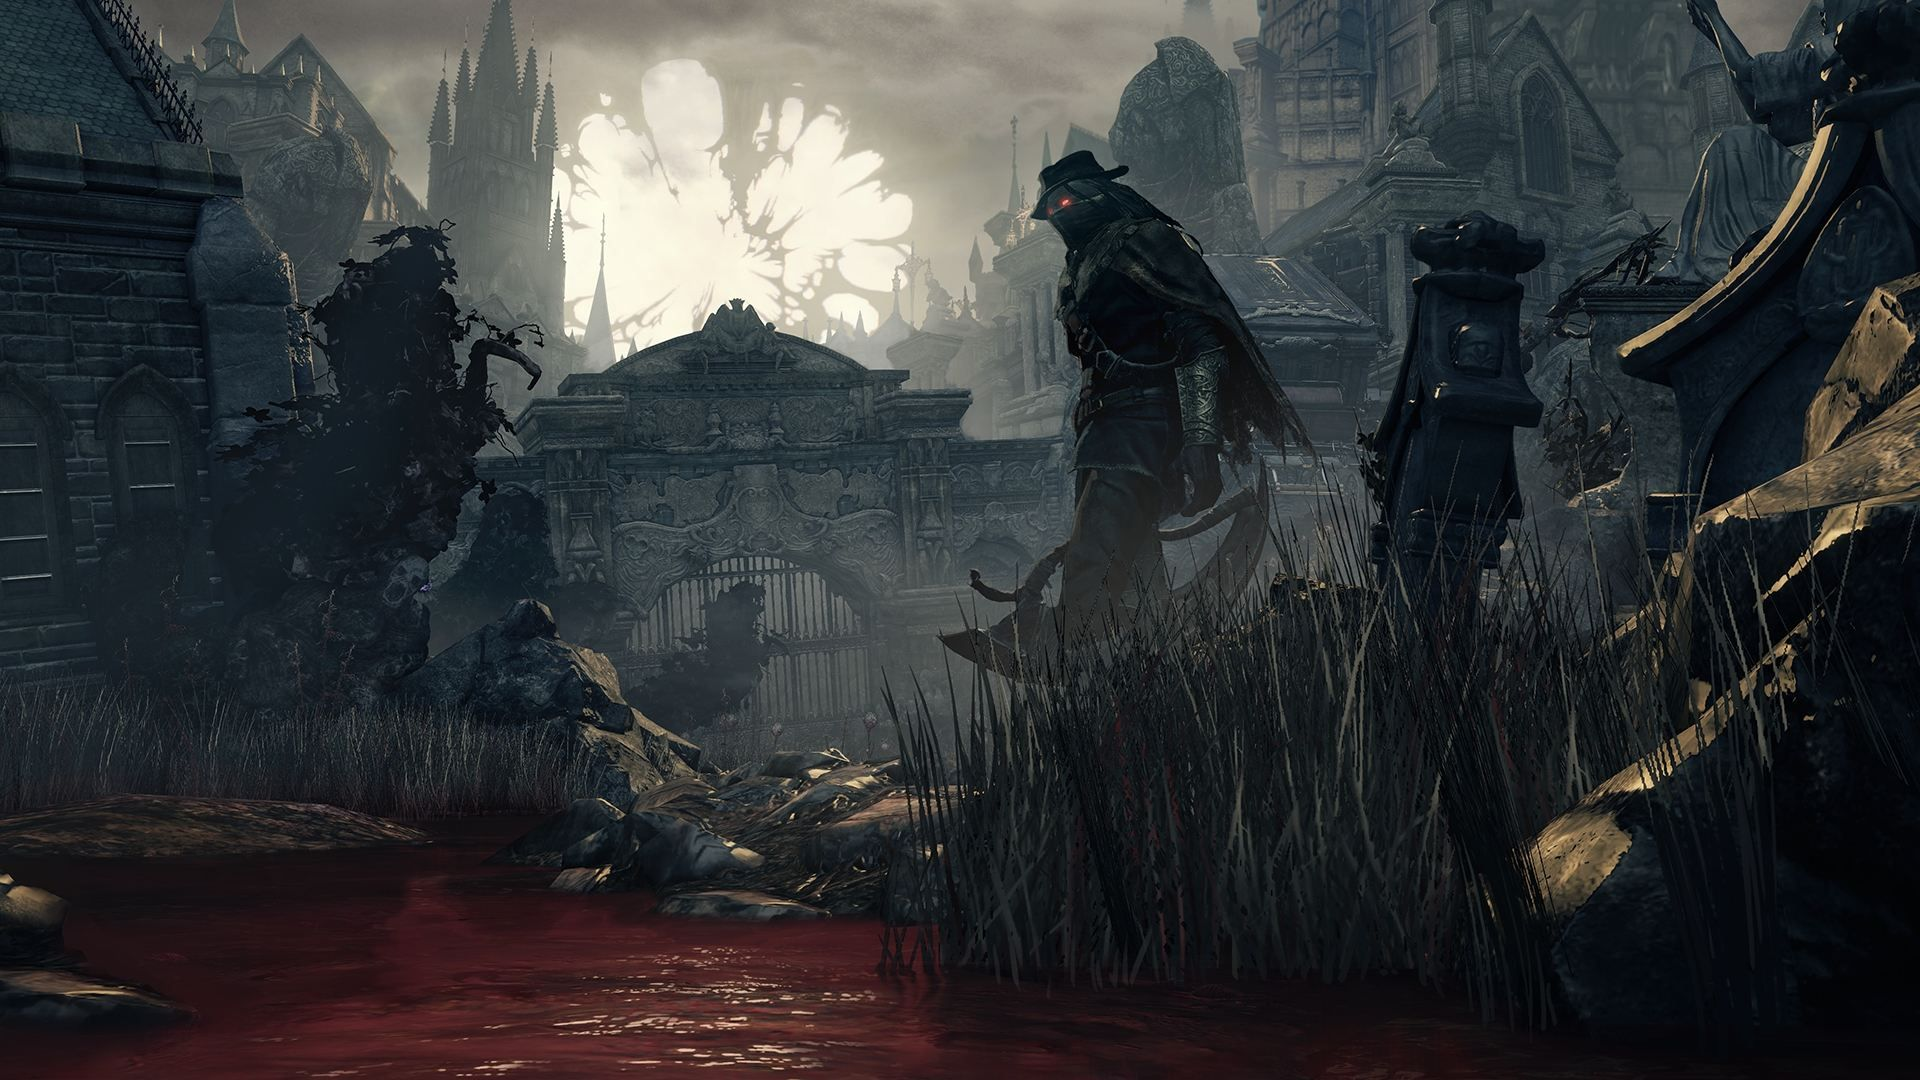 Bloodborne: Game of the Year Edition (PS4) - 8